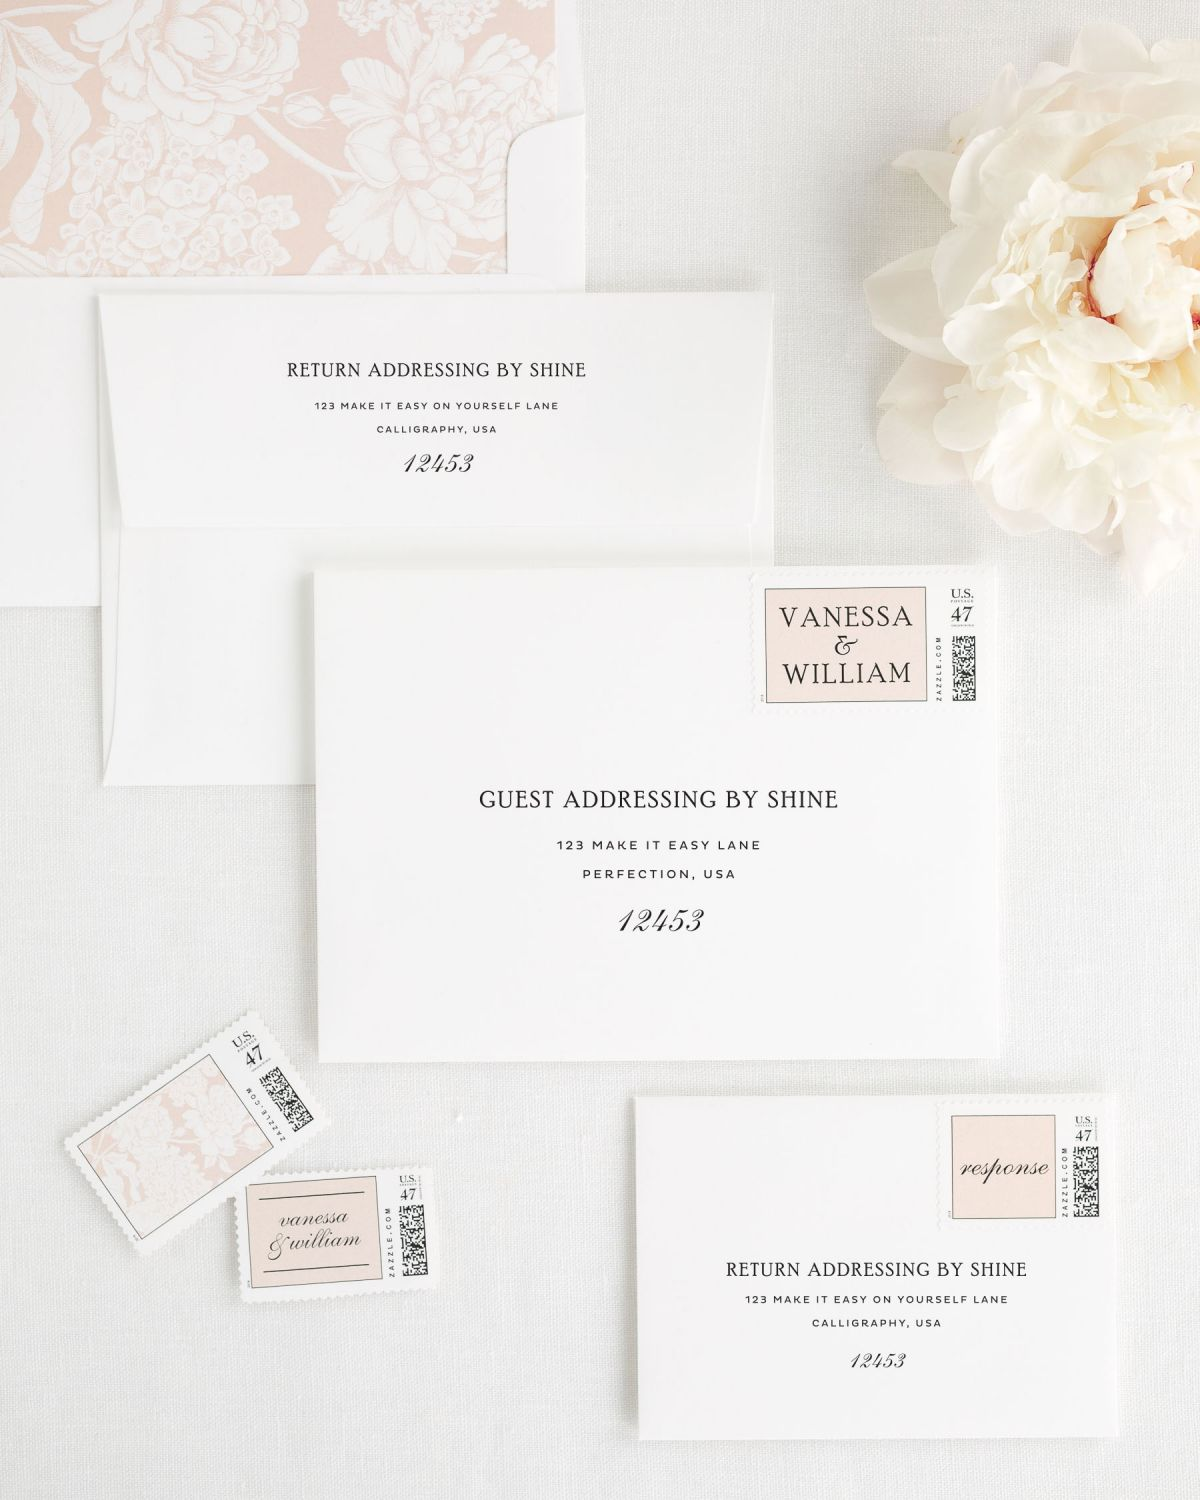 Simple Wedding Invitations in Black and White - Wedding Invitations ...